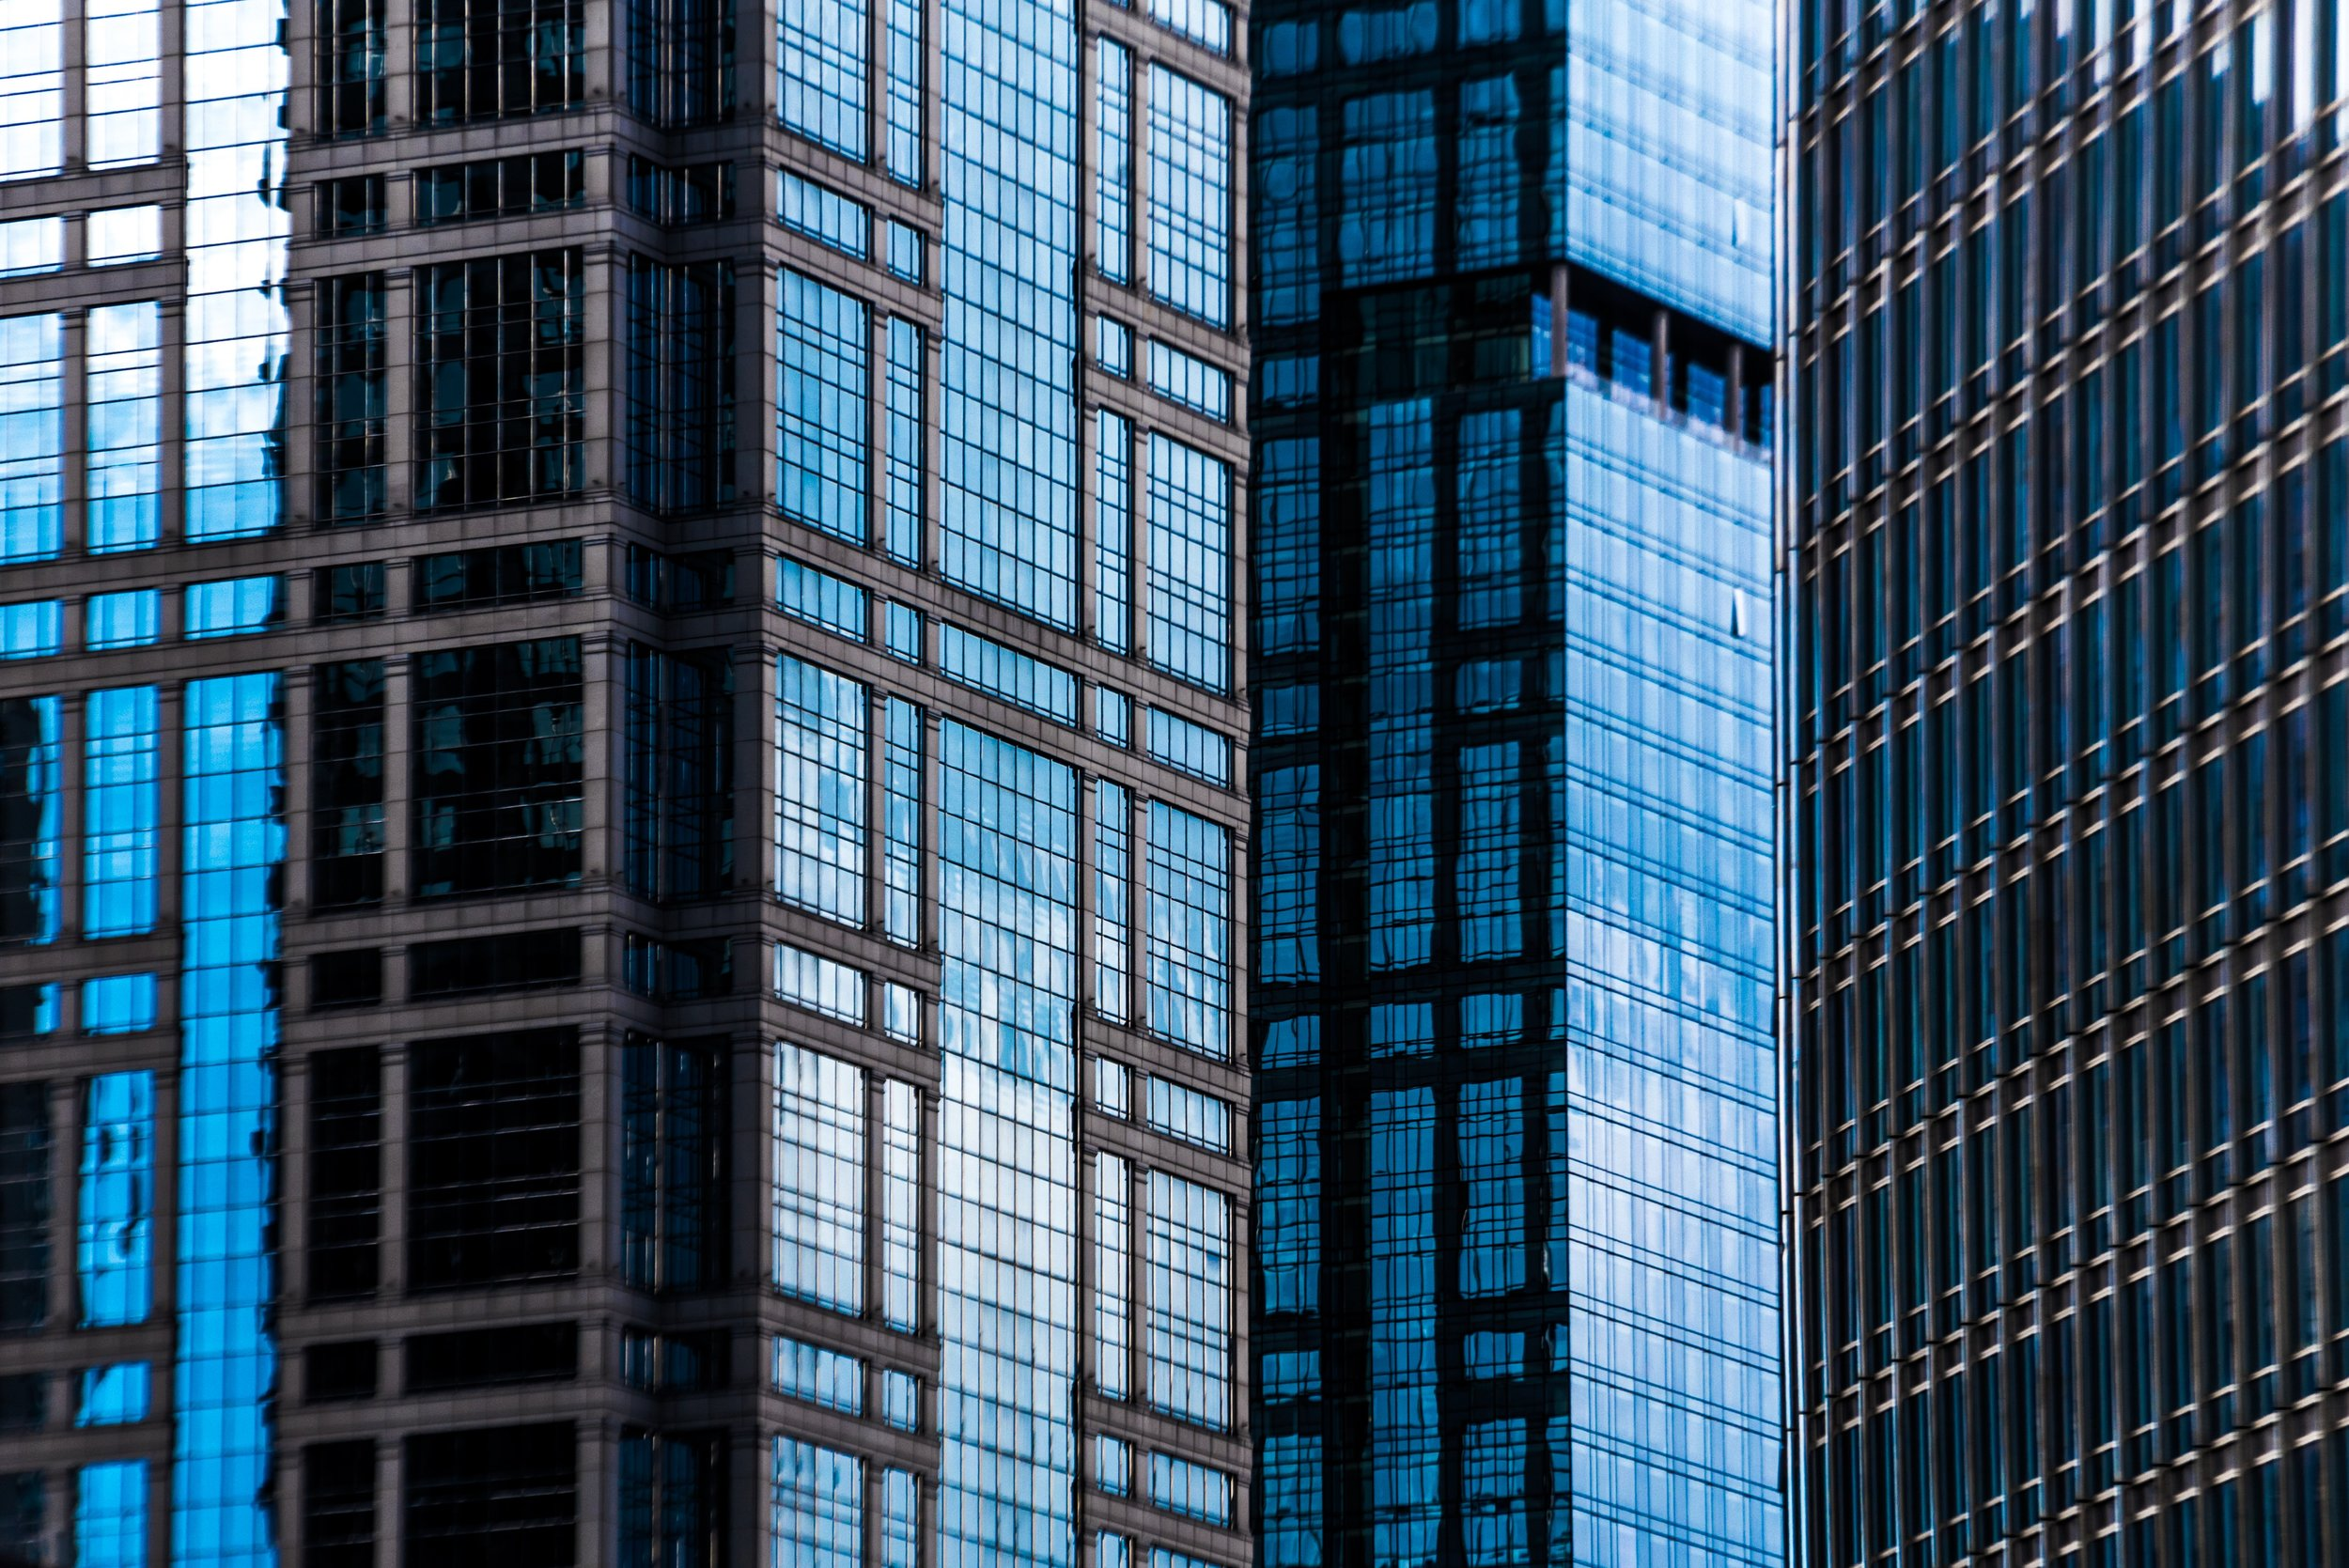 Architecture and design take center stage in Chicago's skyline.